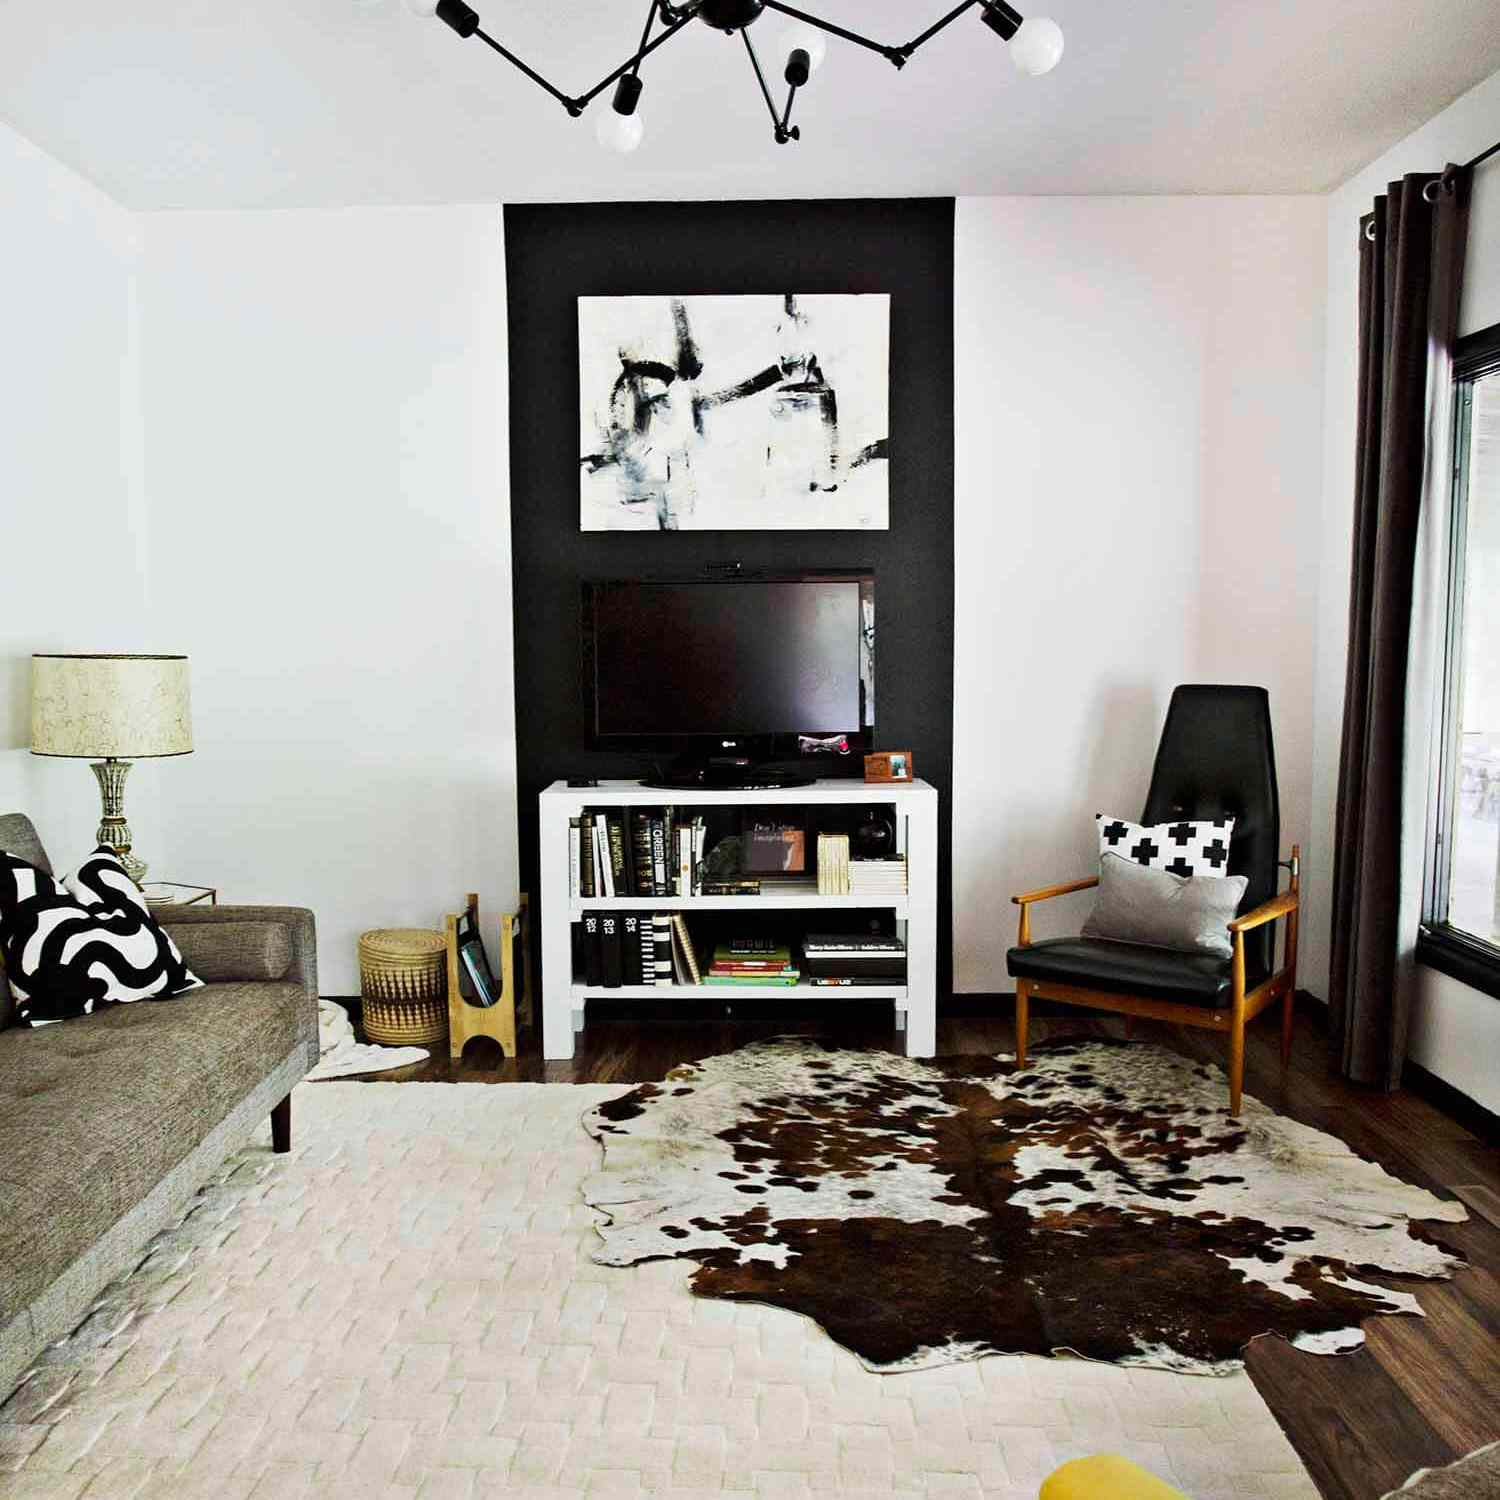 How to decorate around a wall mounted TV